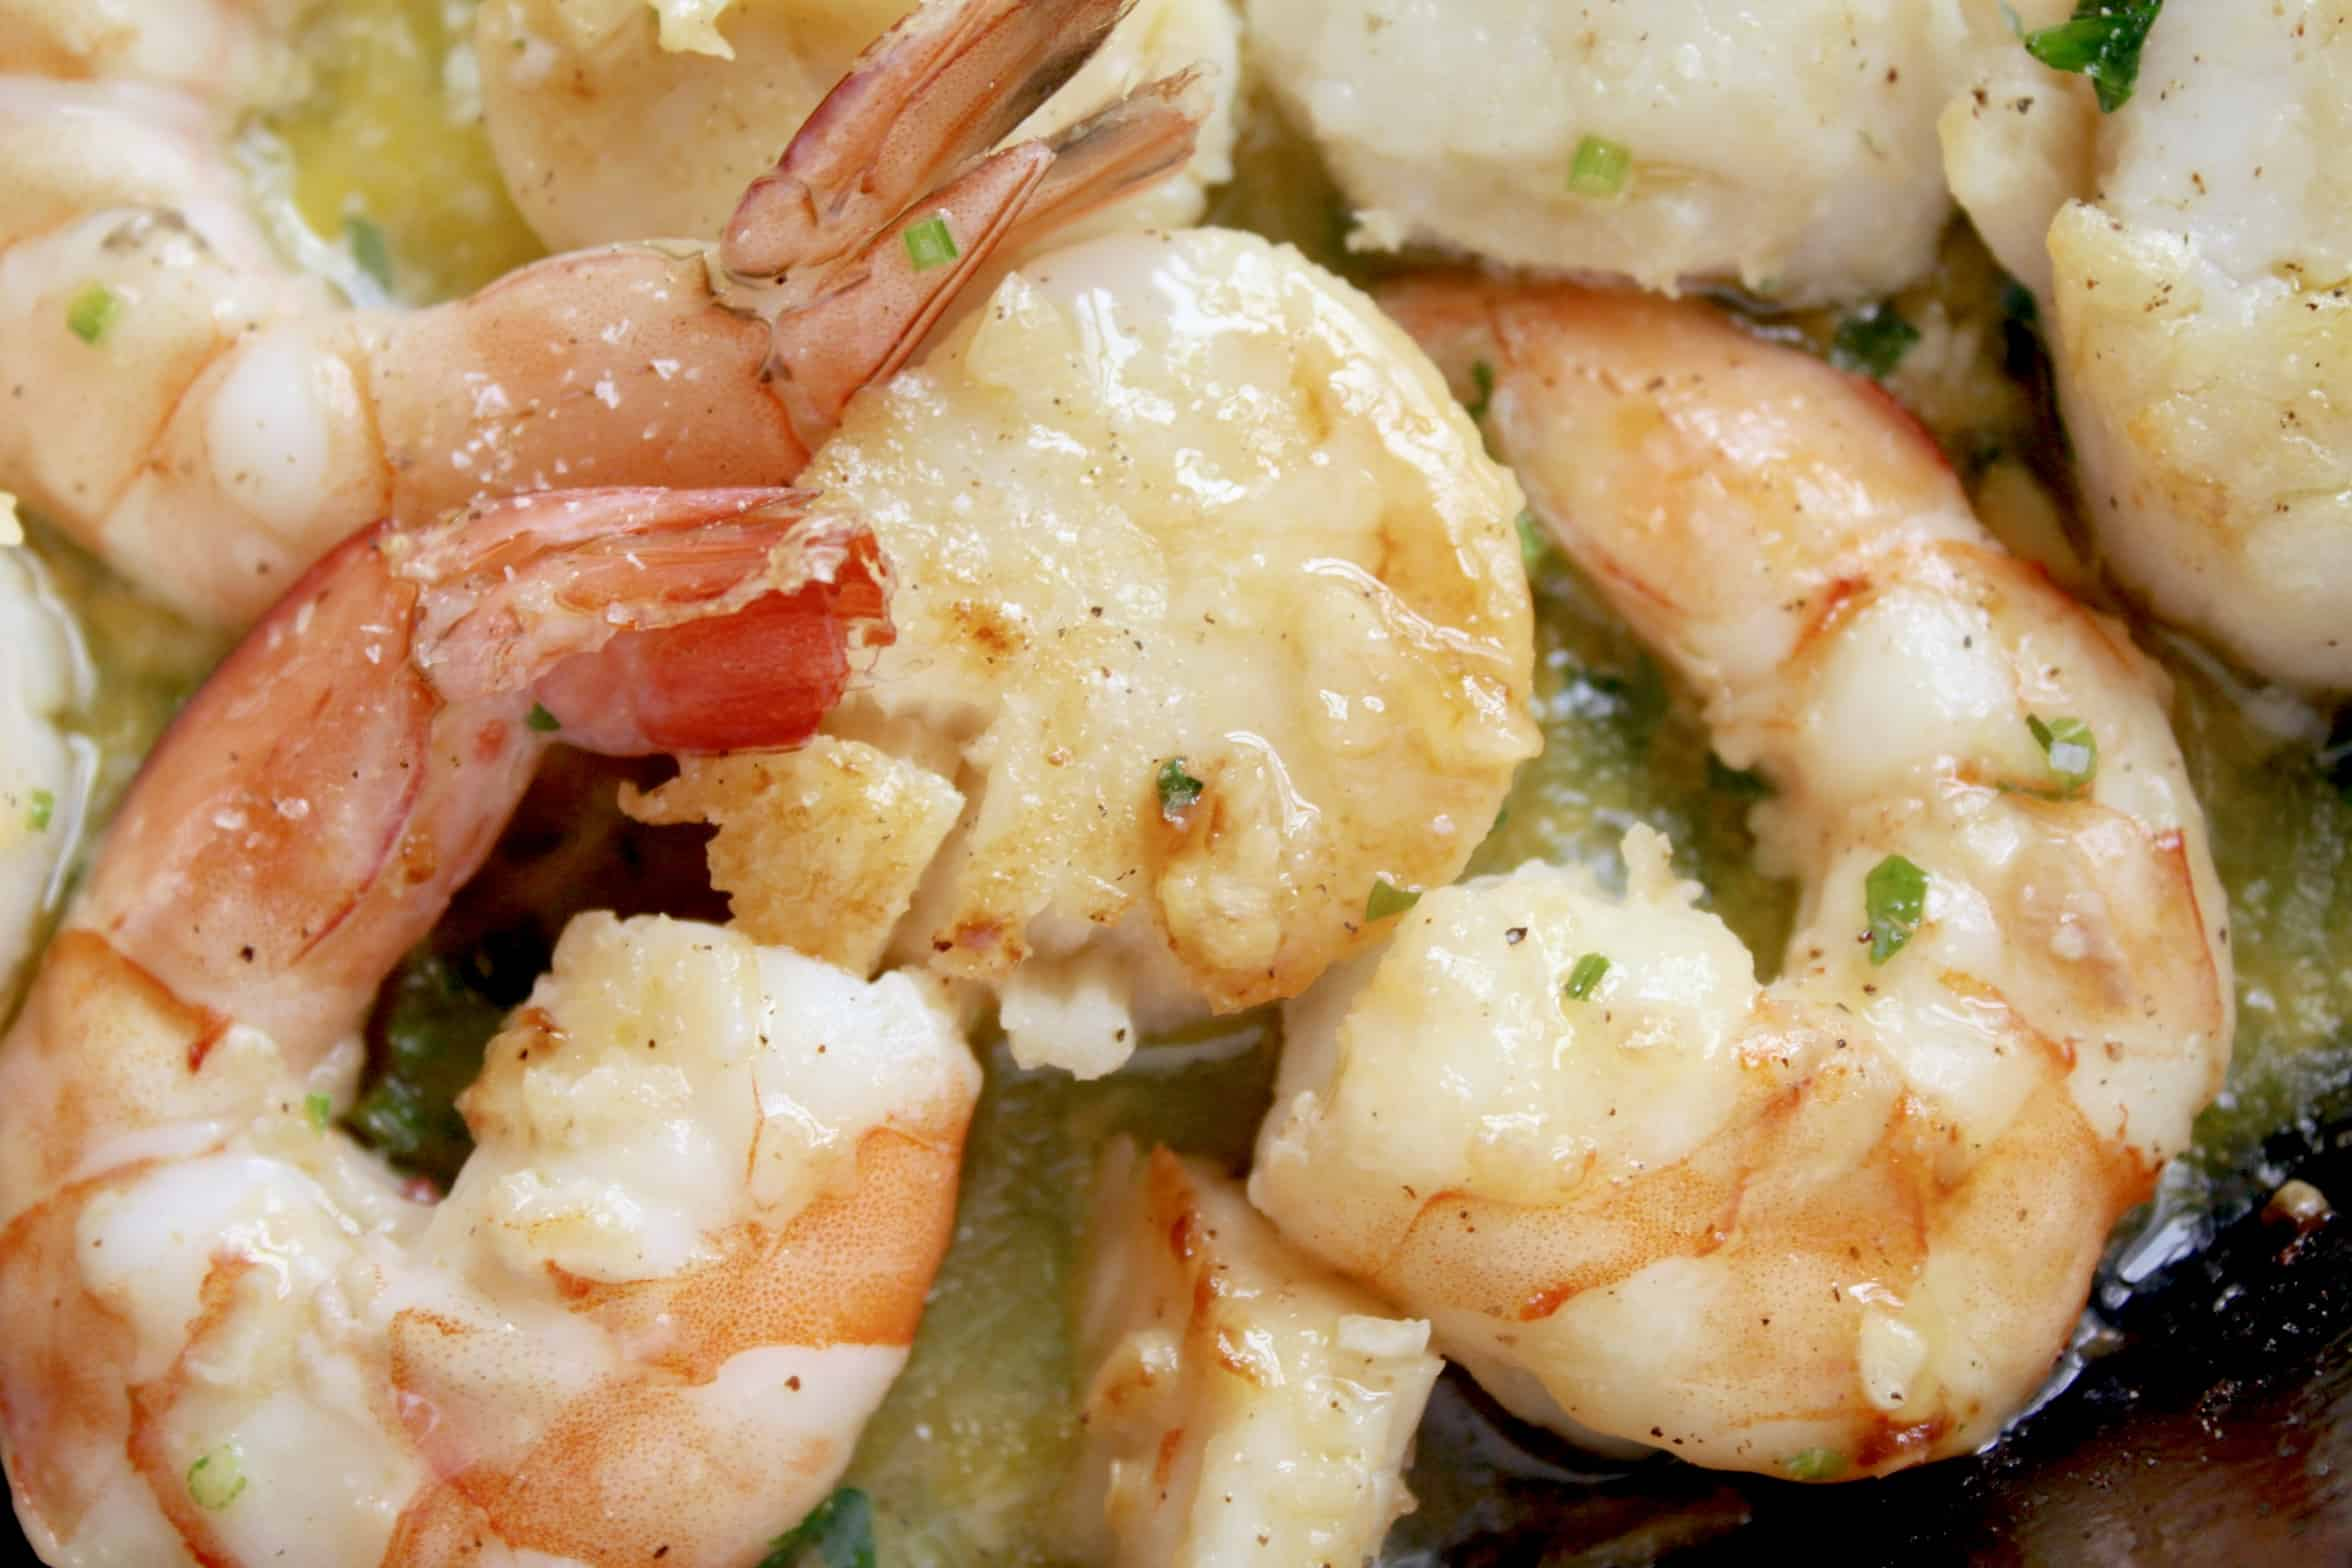 shrimp and scallops in a buttery sauce